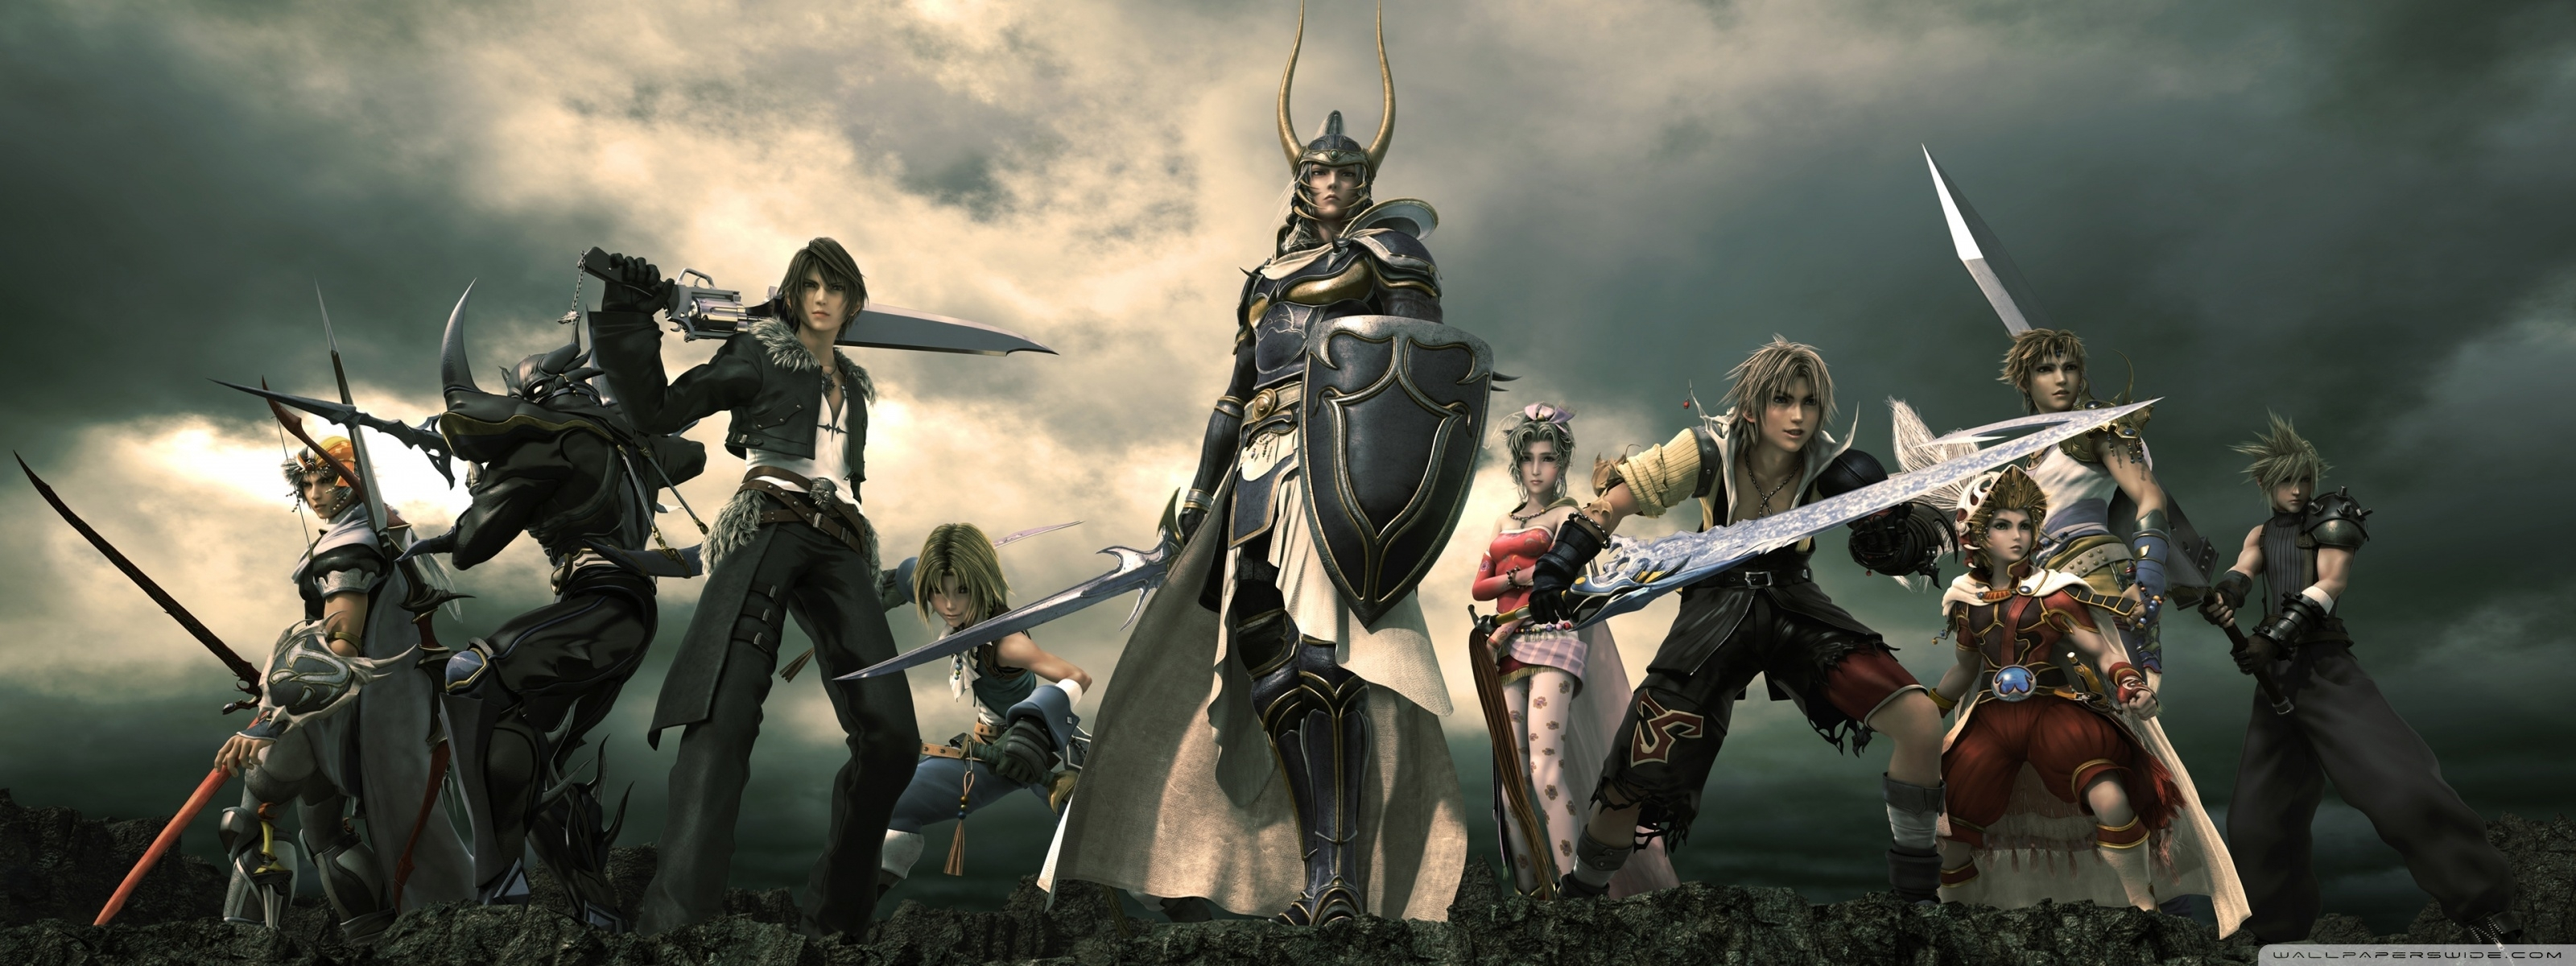 10 New Final Fantasy Triple Monitor Wallpaper FULL HD 1920×1080 For PC Background